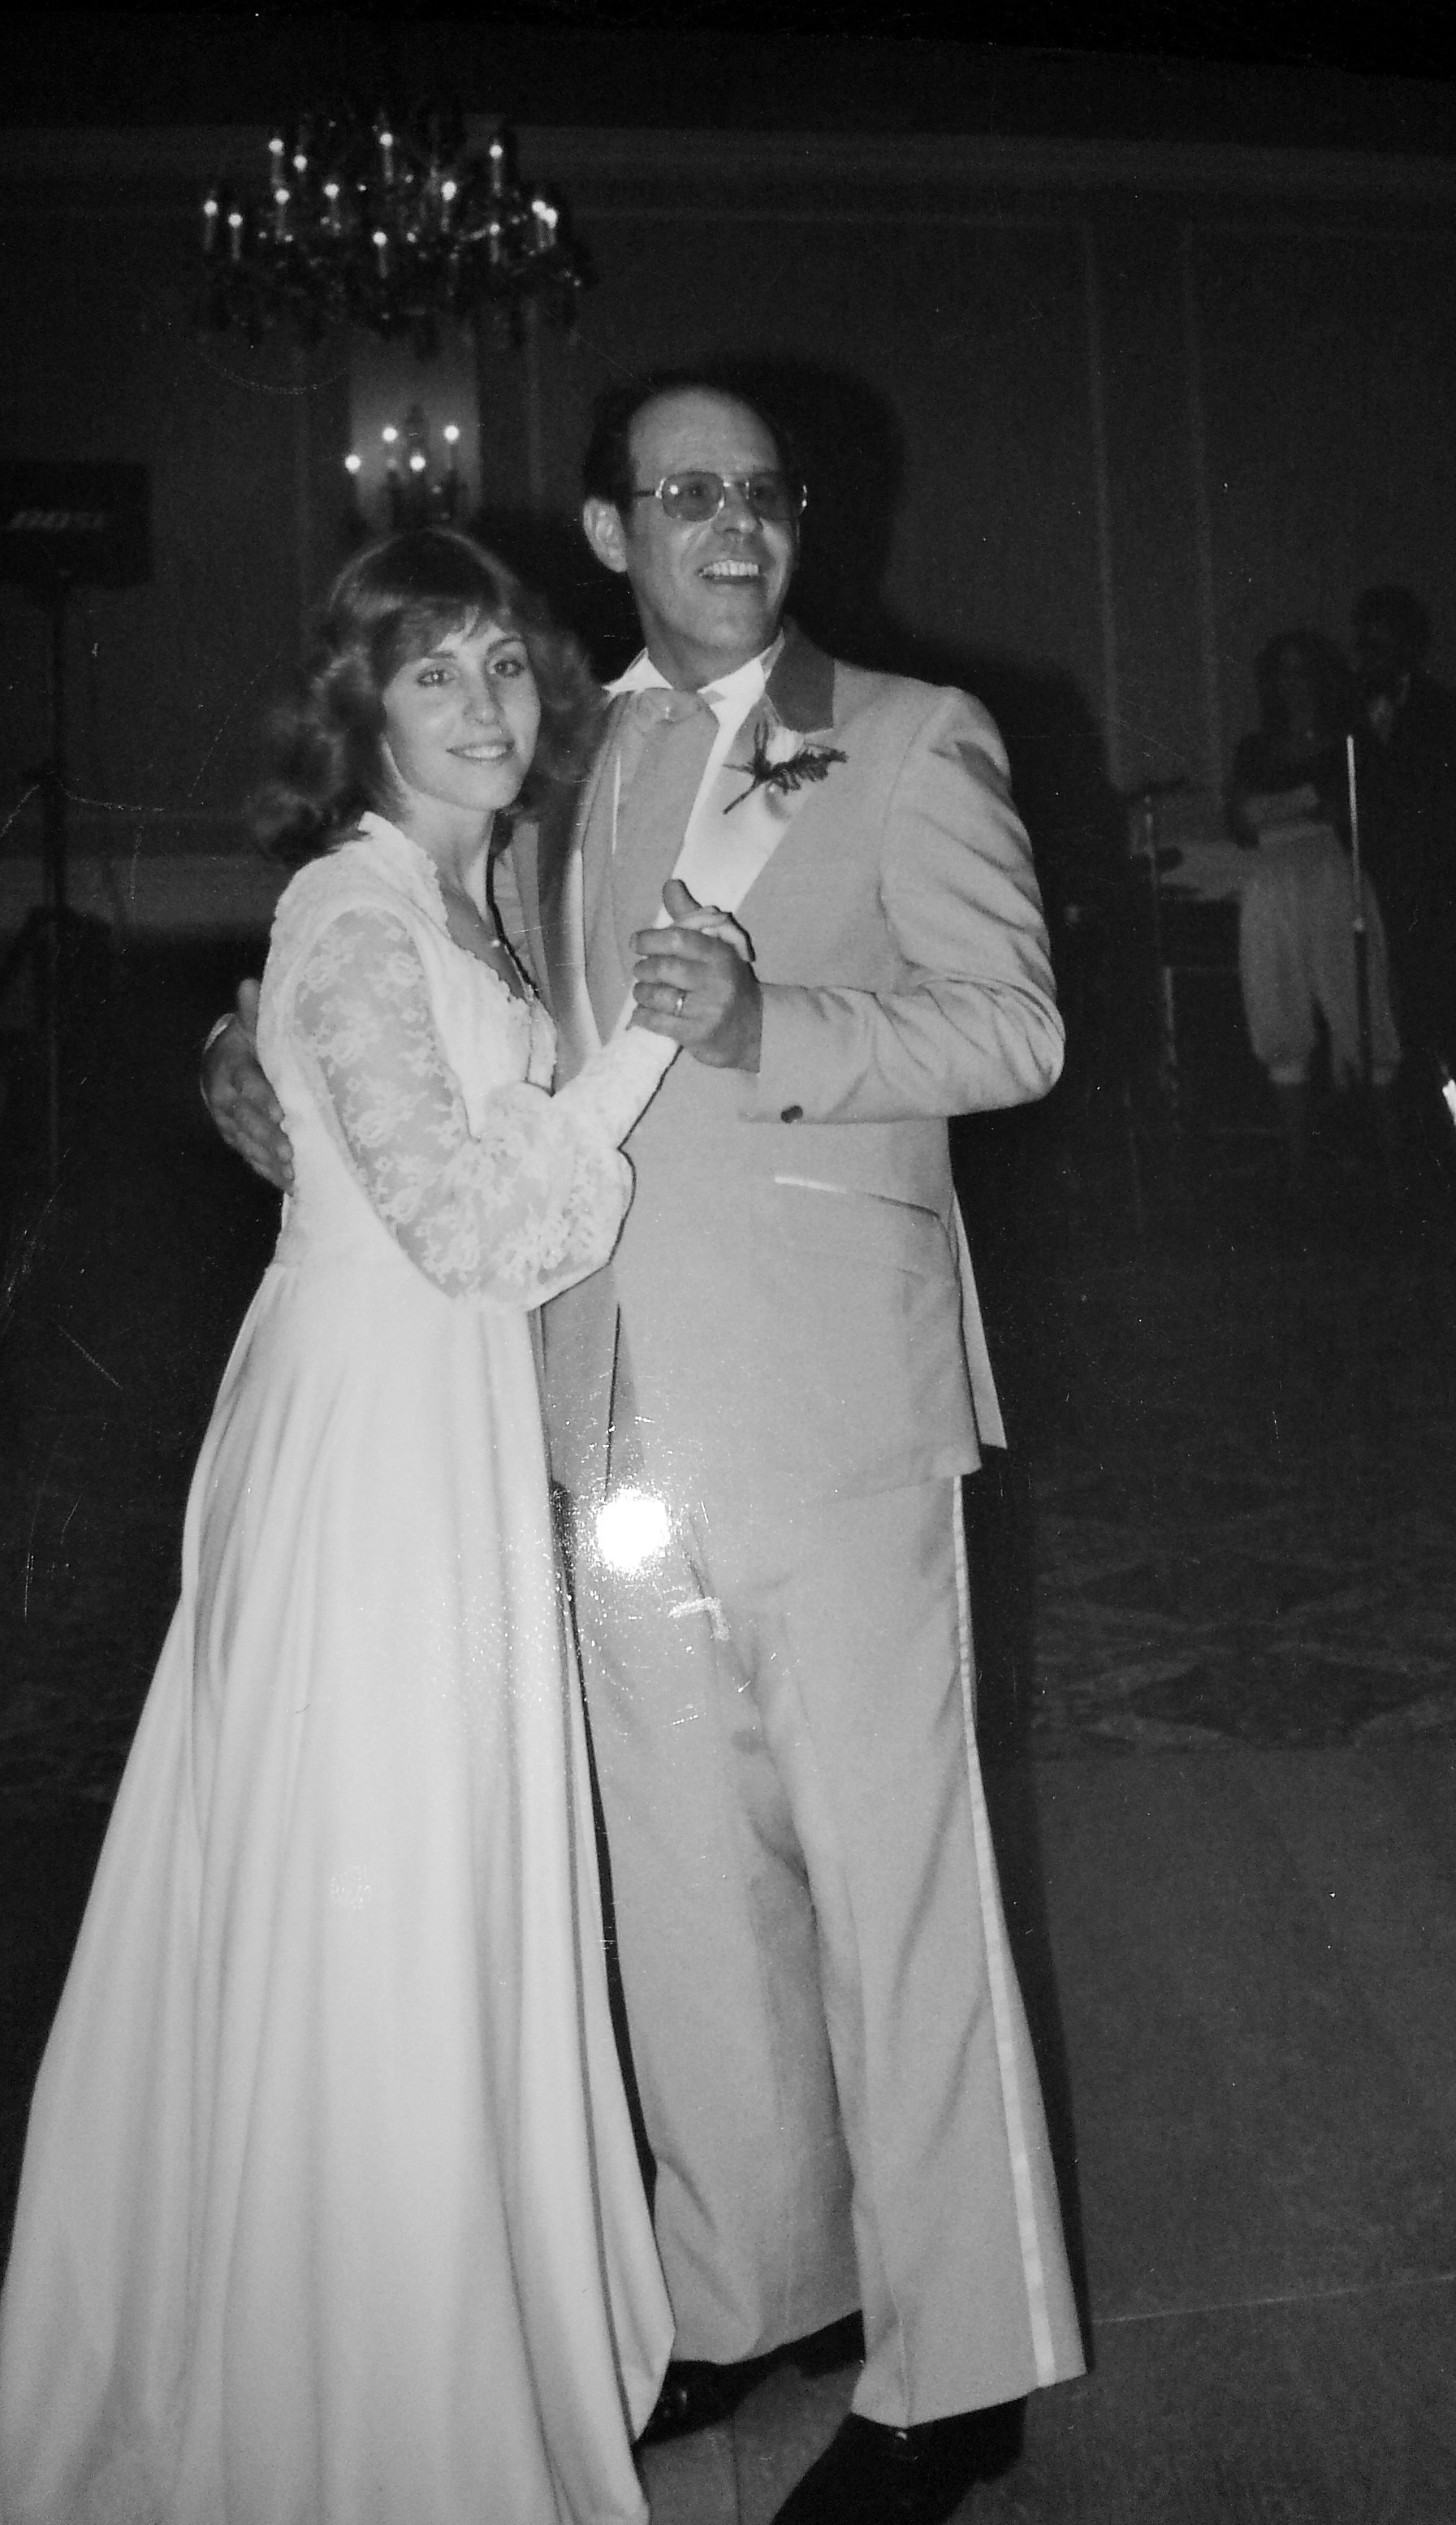 Dad and I at my wedding (2)